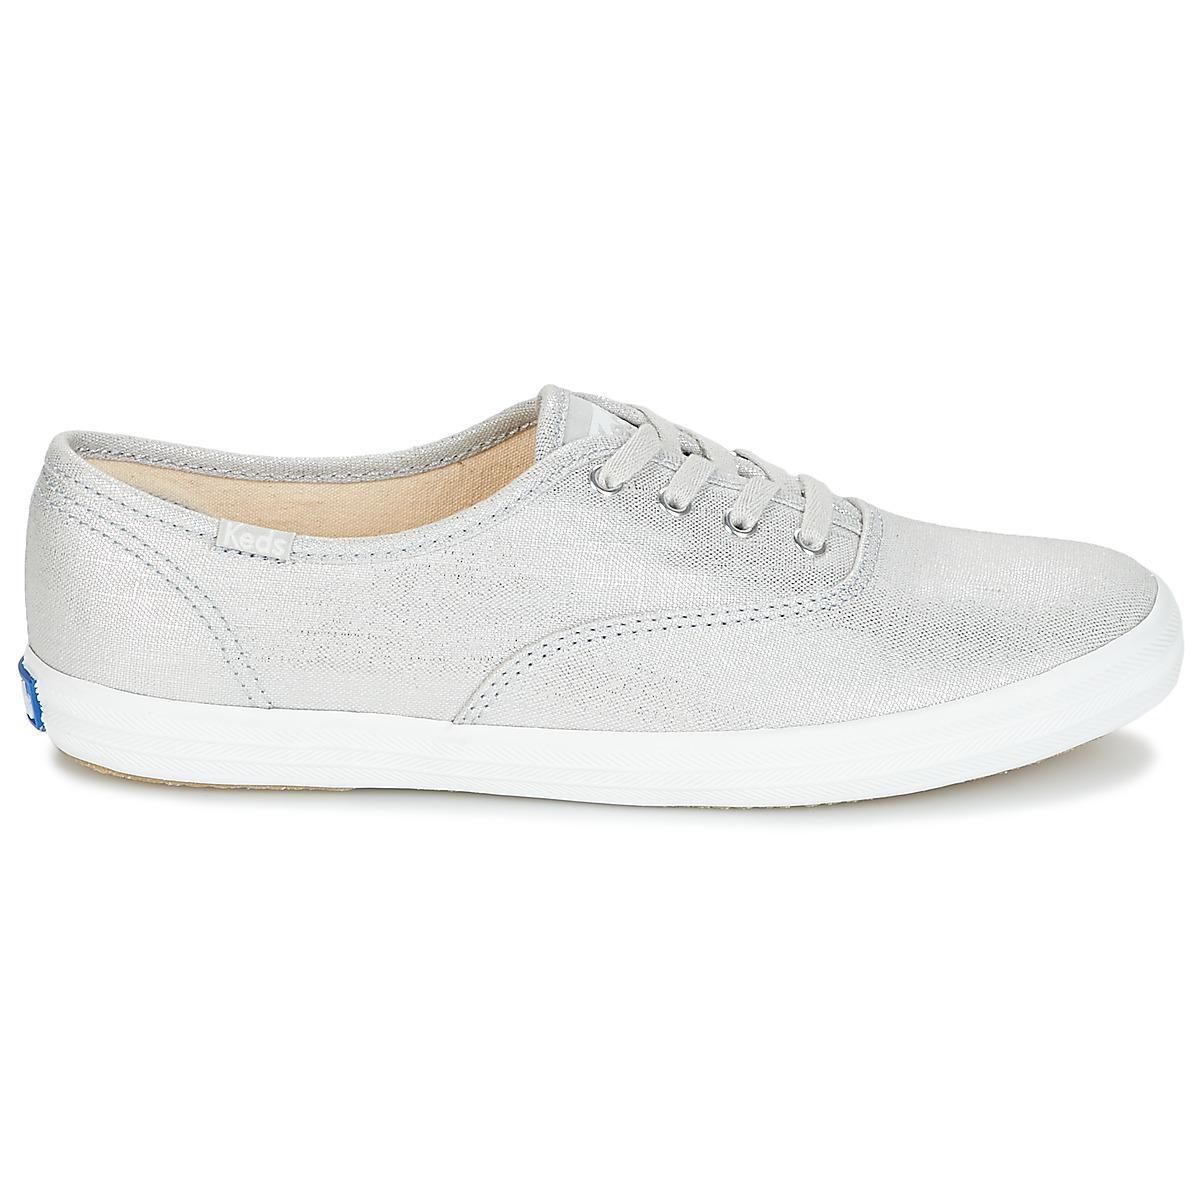 388a42838dafe Keds Champion Metallic Linen Shoes (trainers) in Metallic - Lyst